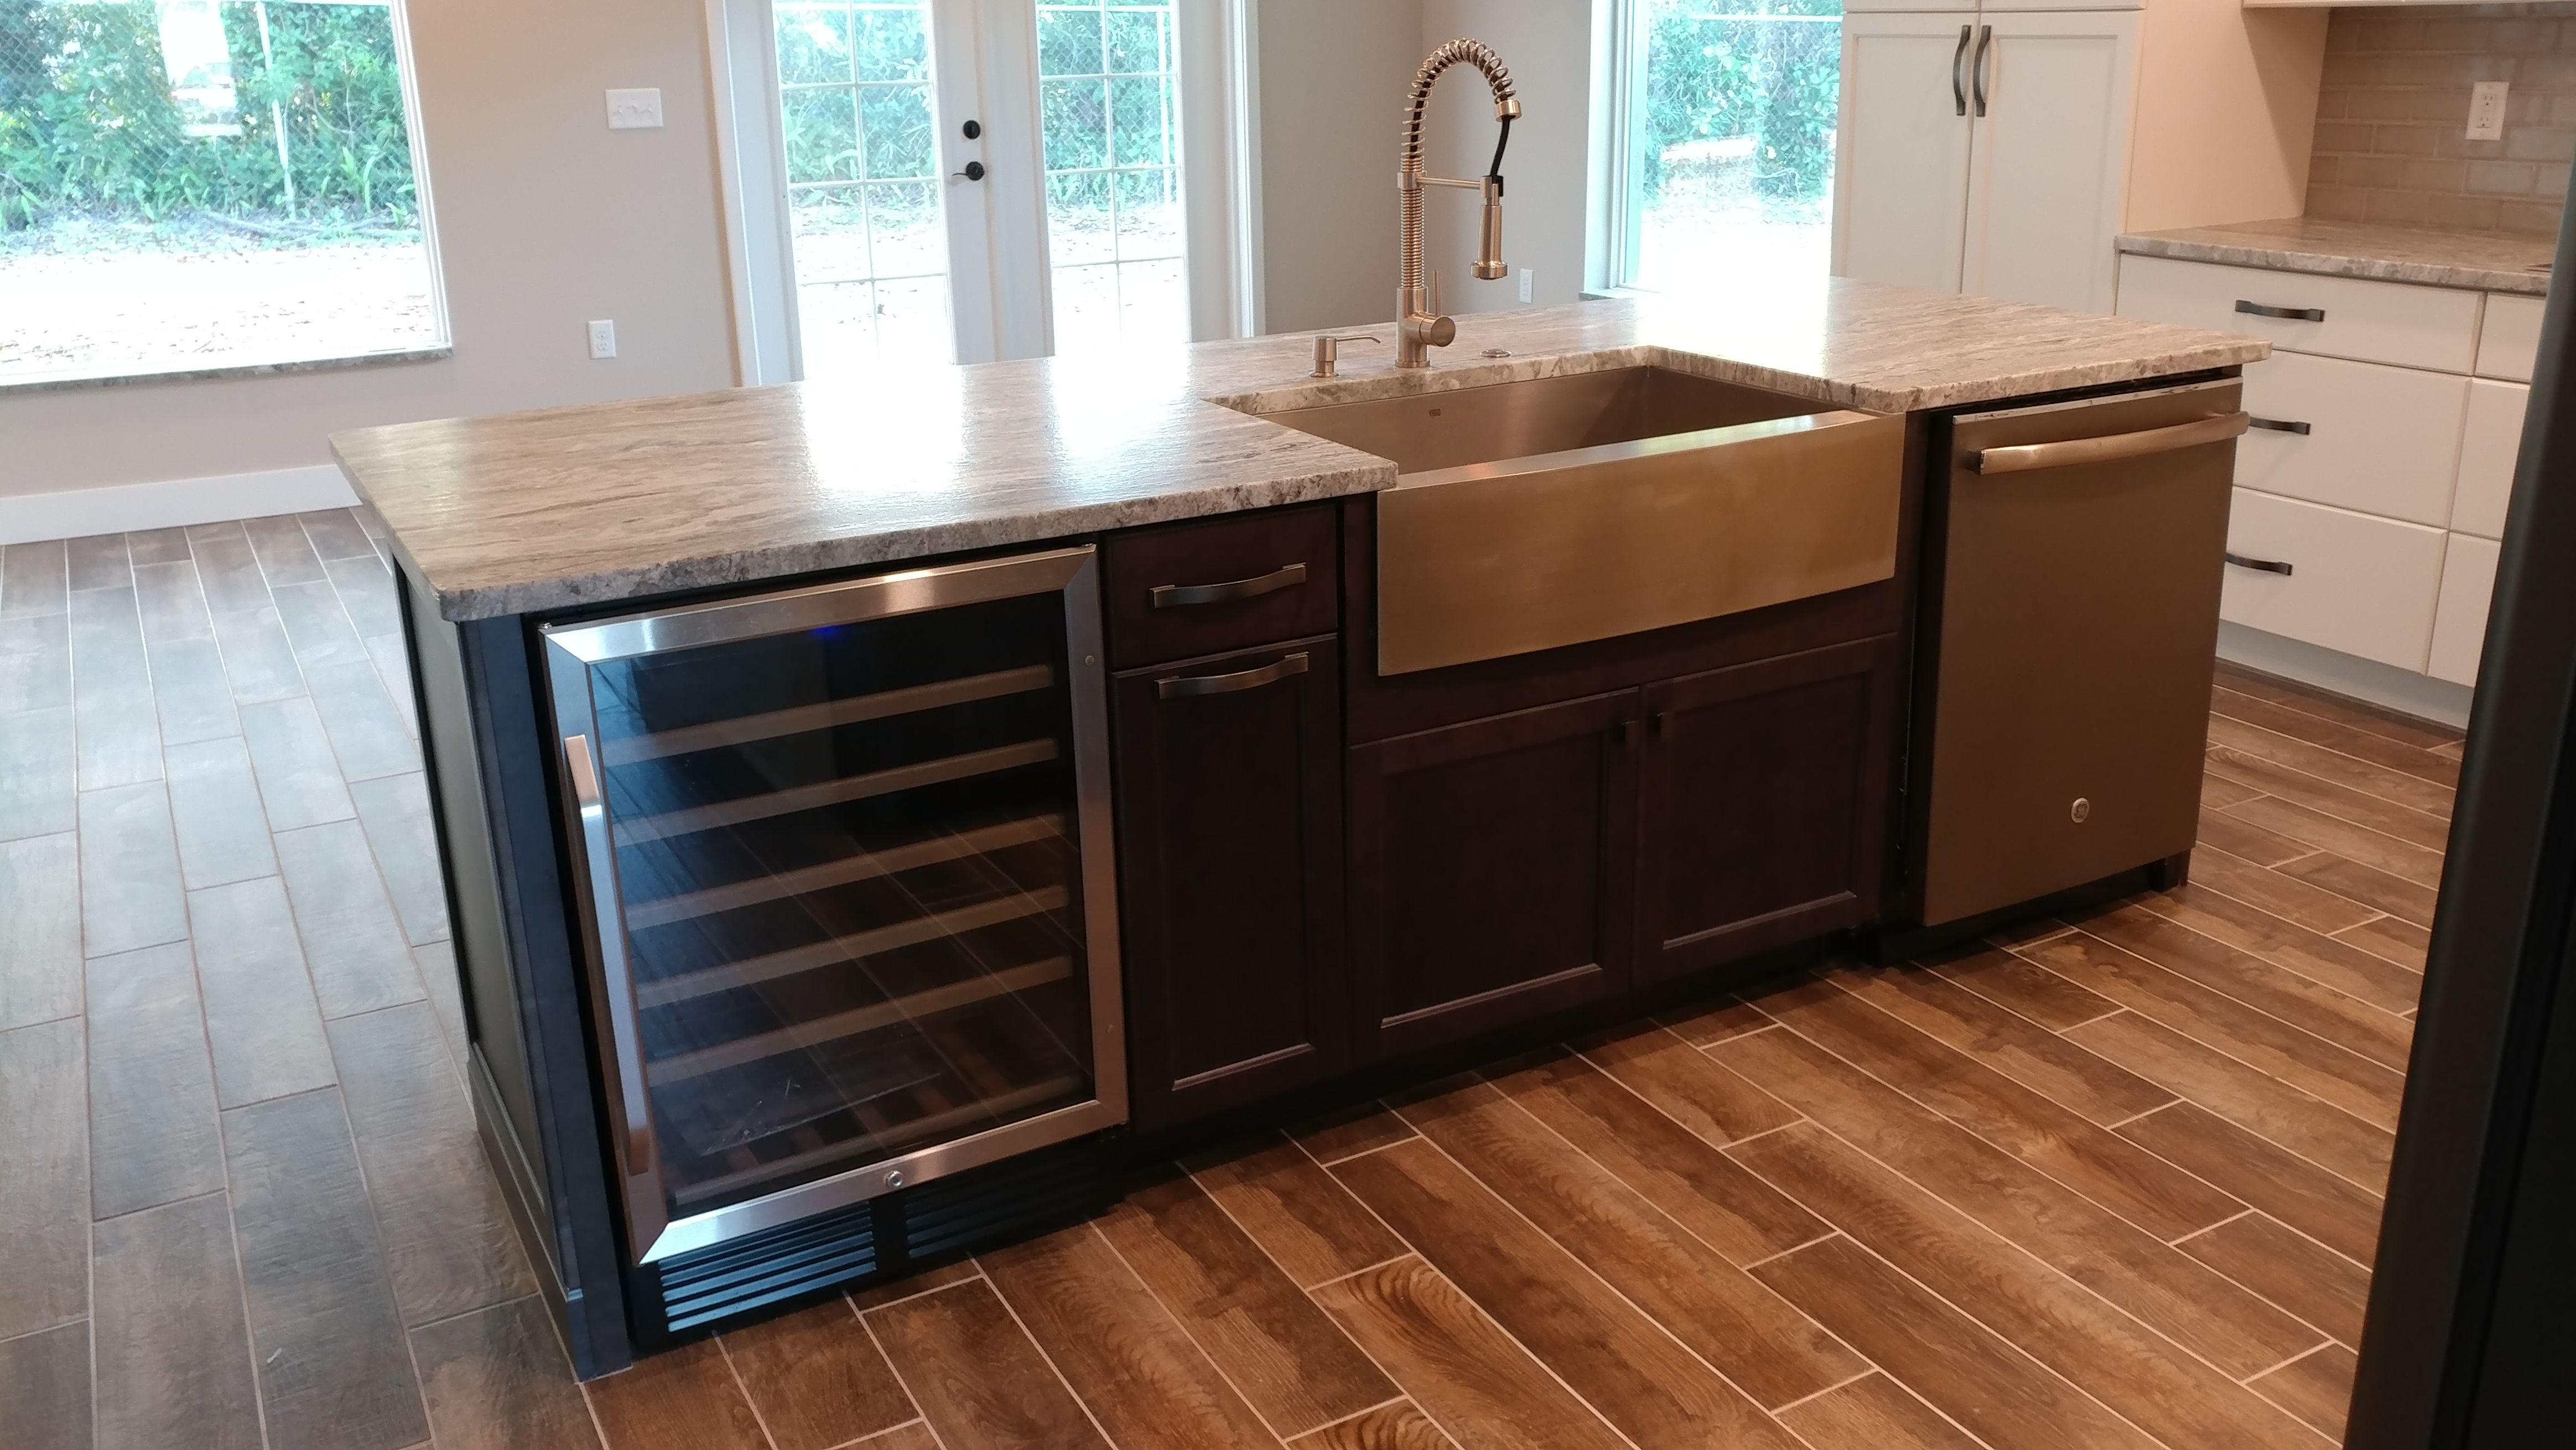 Fabulous Farm Sink With Pull Out Trash Dishwasher And A Wine Cooler My Kitchen Island With Sink Kitchen Island With Sink And Dishwasher Kitchen Island Decor